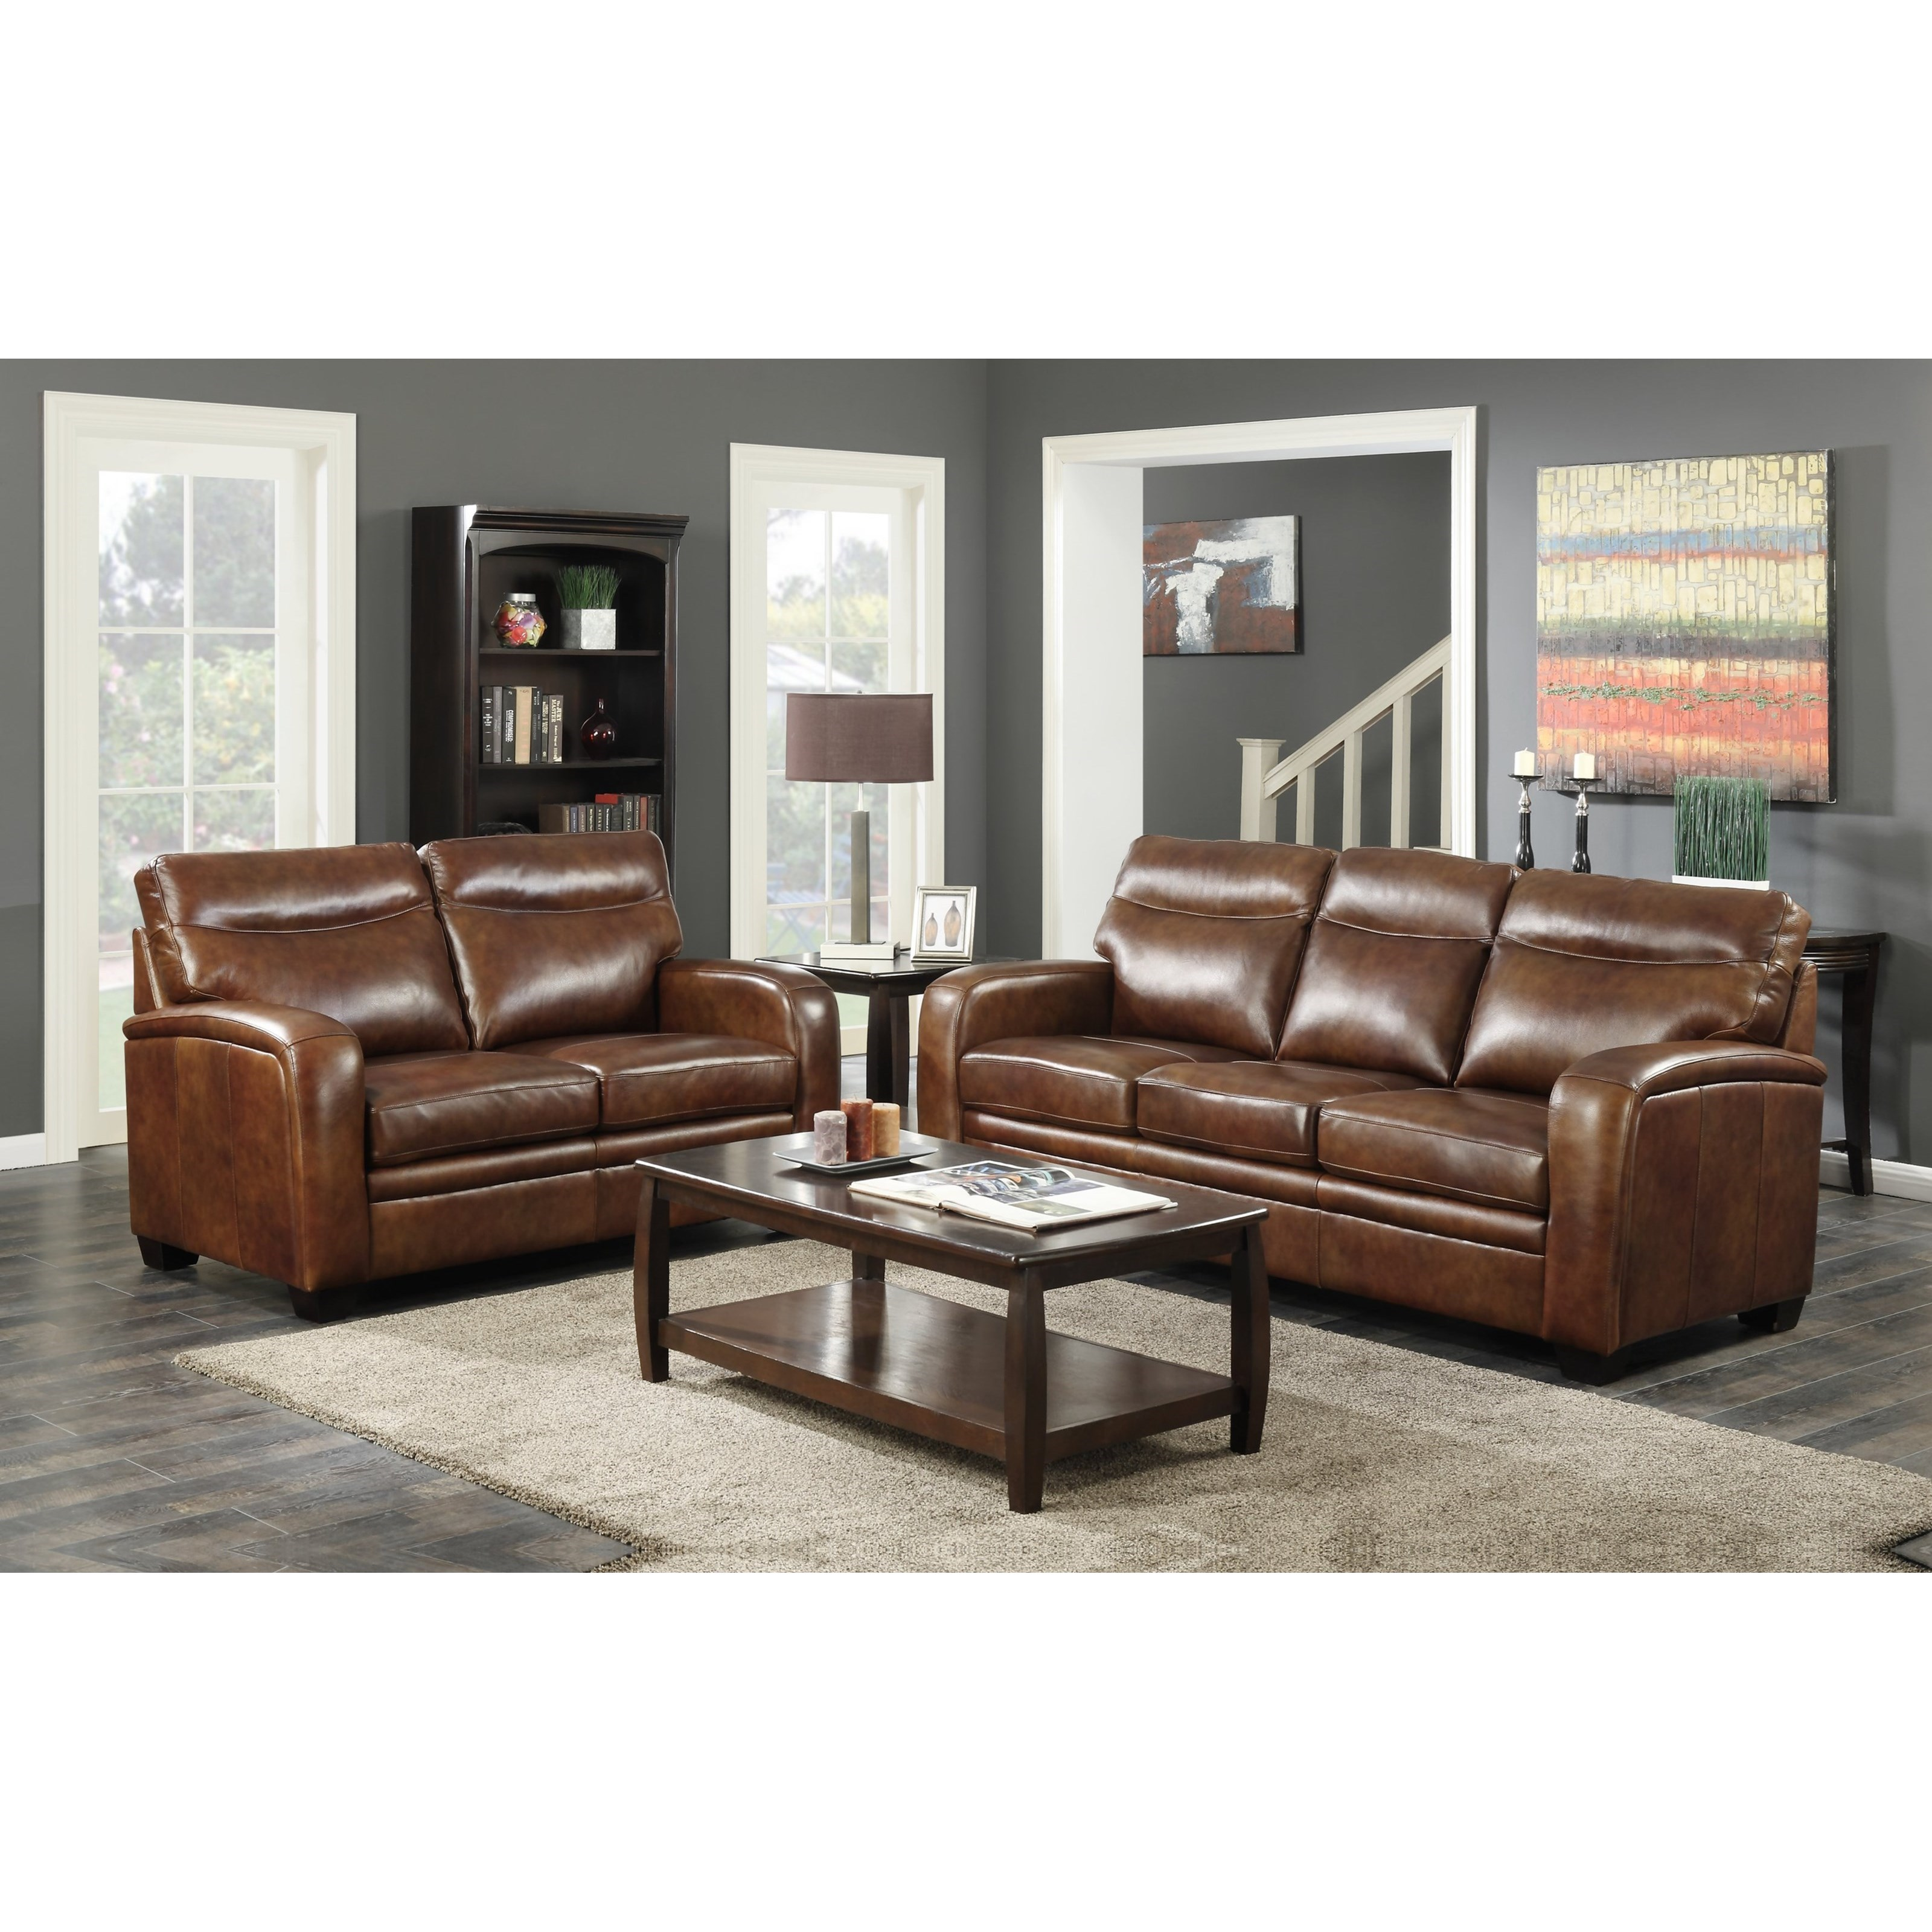 Montebello stationary living room group dream home for Living room furniture groups